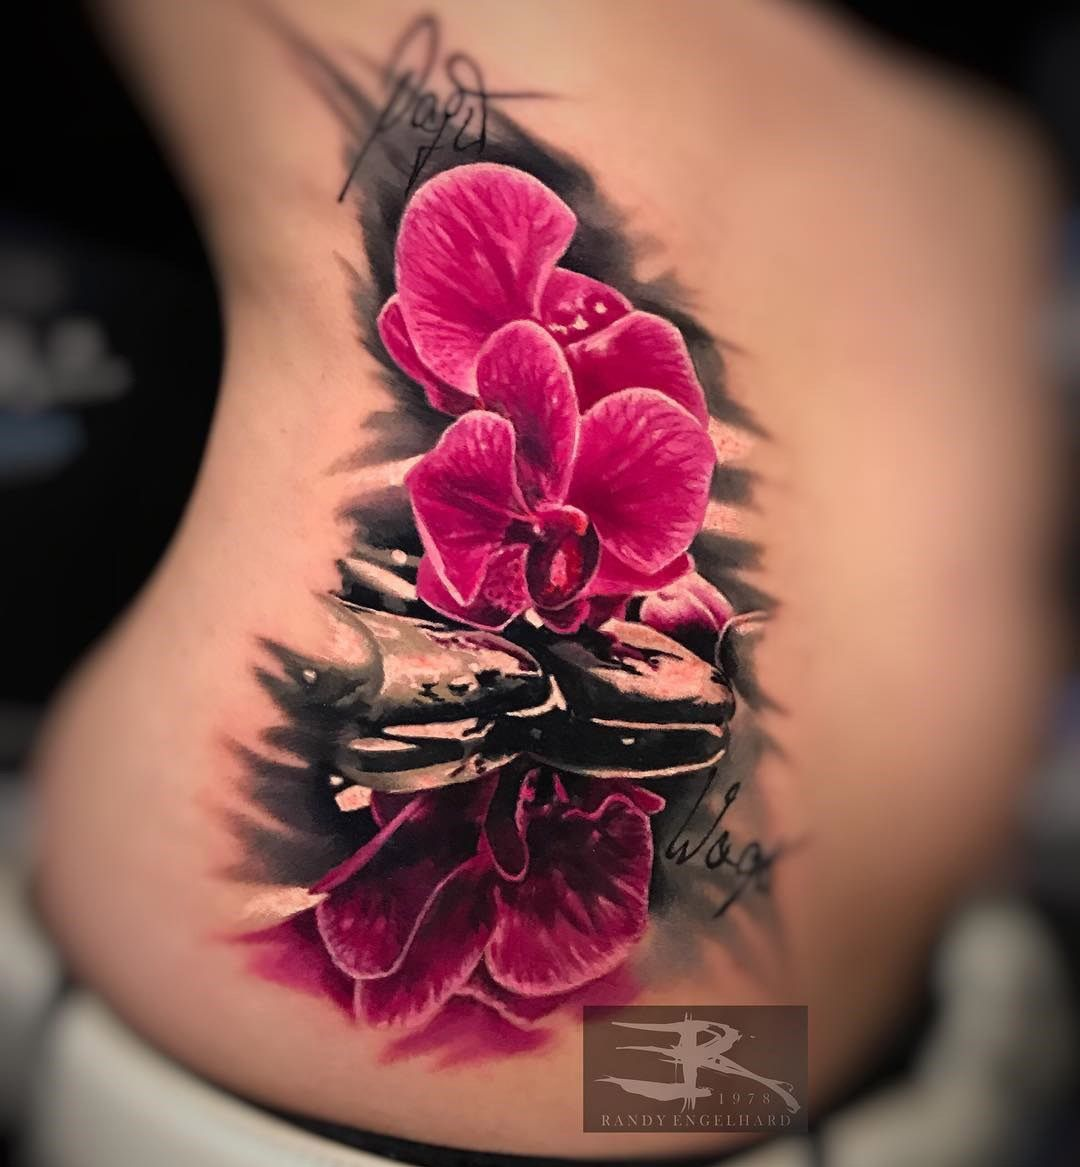 d62a74ea84675 Pretty pink orchids, realism piece on girl's side by Randy Engelhard,  artist and owner of Heaven of Colours tattoo studio in Zwickau, Germany.